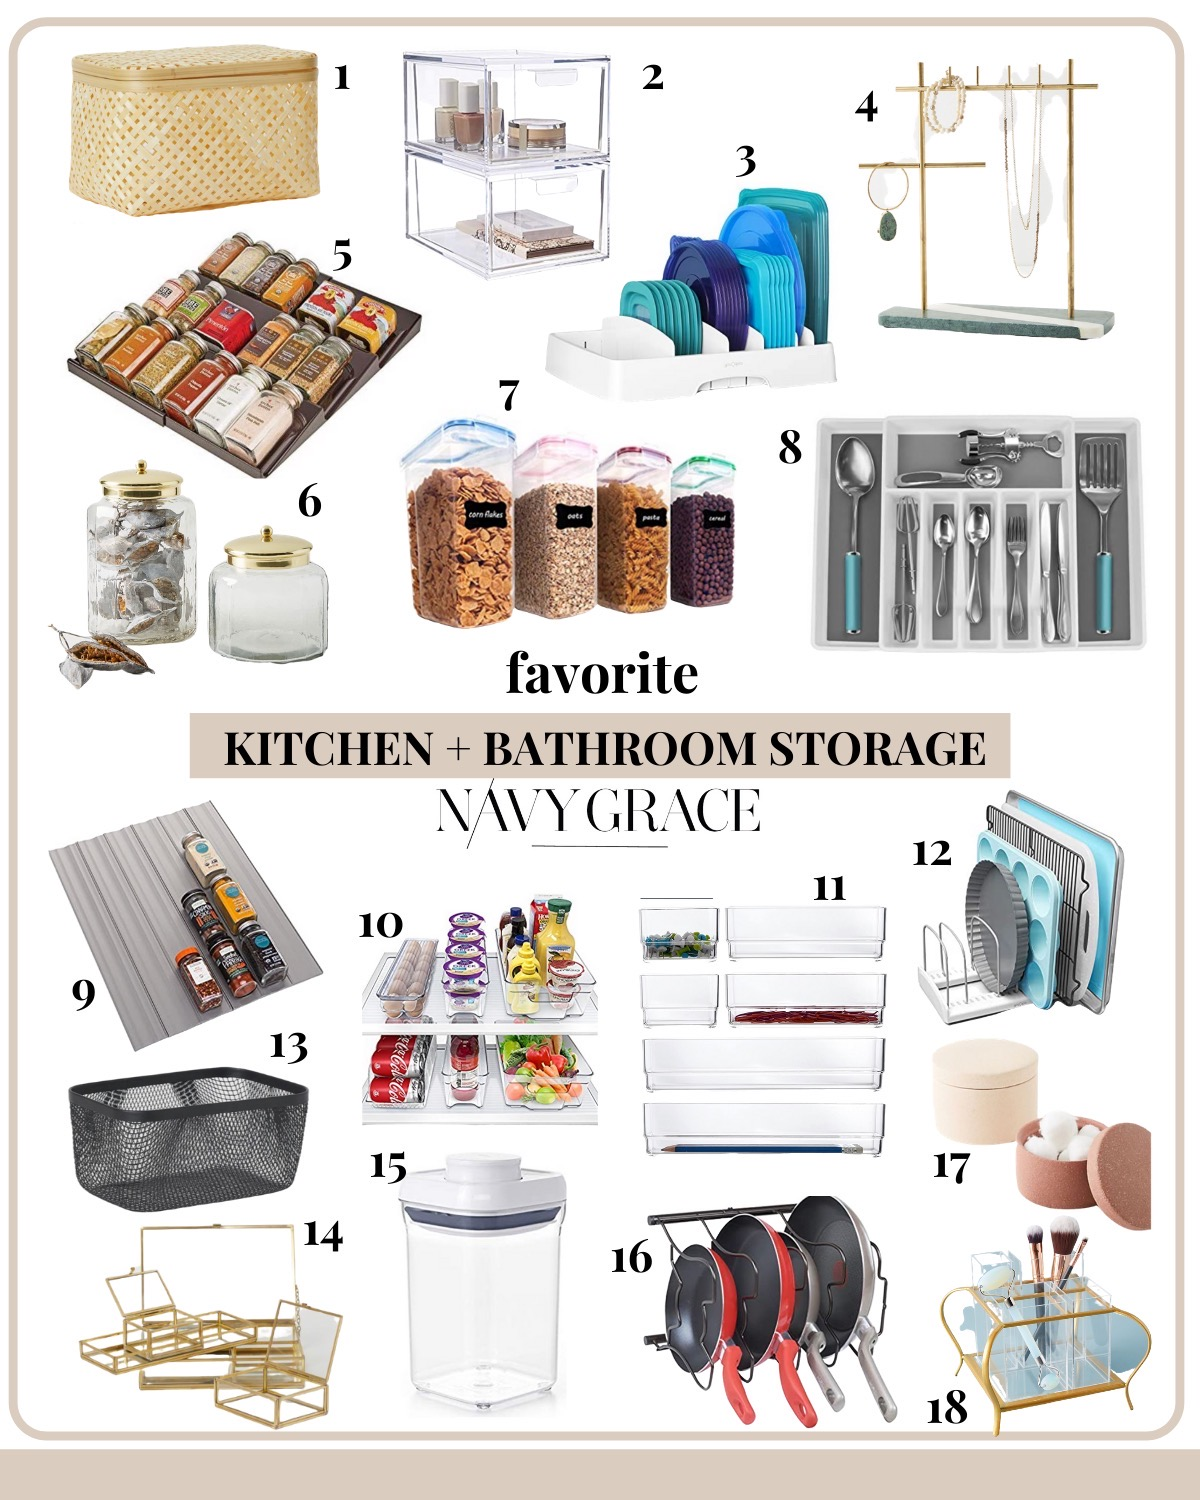 Kitchen Organization Products by popular San Diego life and style blog, Navy Grace: collage image of a bamboo box, stackable cosmetics storage bins, Tupperware lid organizer, jewelry stand, adjustable spice rack, Glass Canister, cereal storage container, Flatware Organizer, spice liner, Fridge and Freezer Bins, clear vanity organization, Bakeware Rack, metal wire basket, Clear Glass Box, OXO pop container, Pot and Pan Rack Holder, textured canister, and Makeup Organizer.